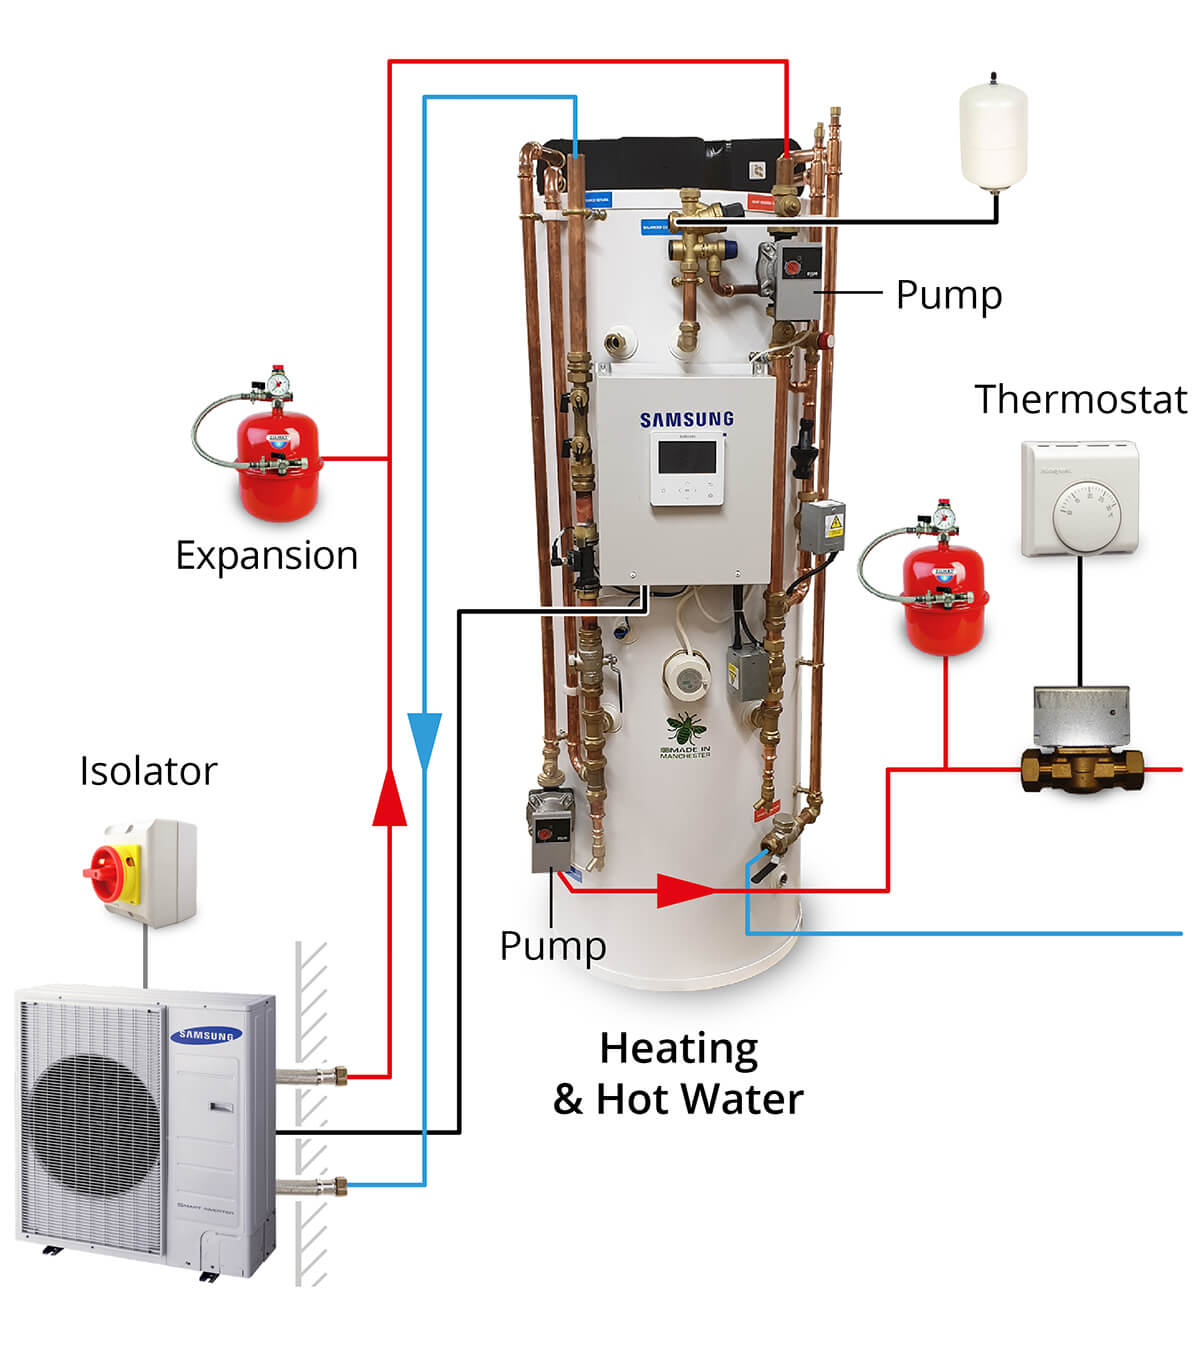 air source heat pump exploded view - Air Source Heat Pumps